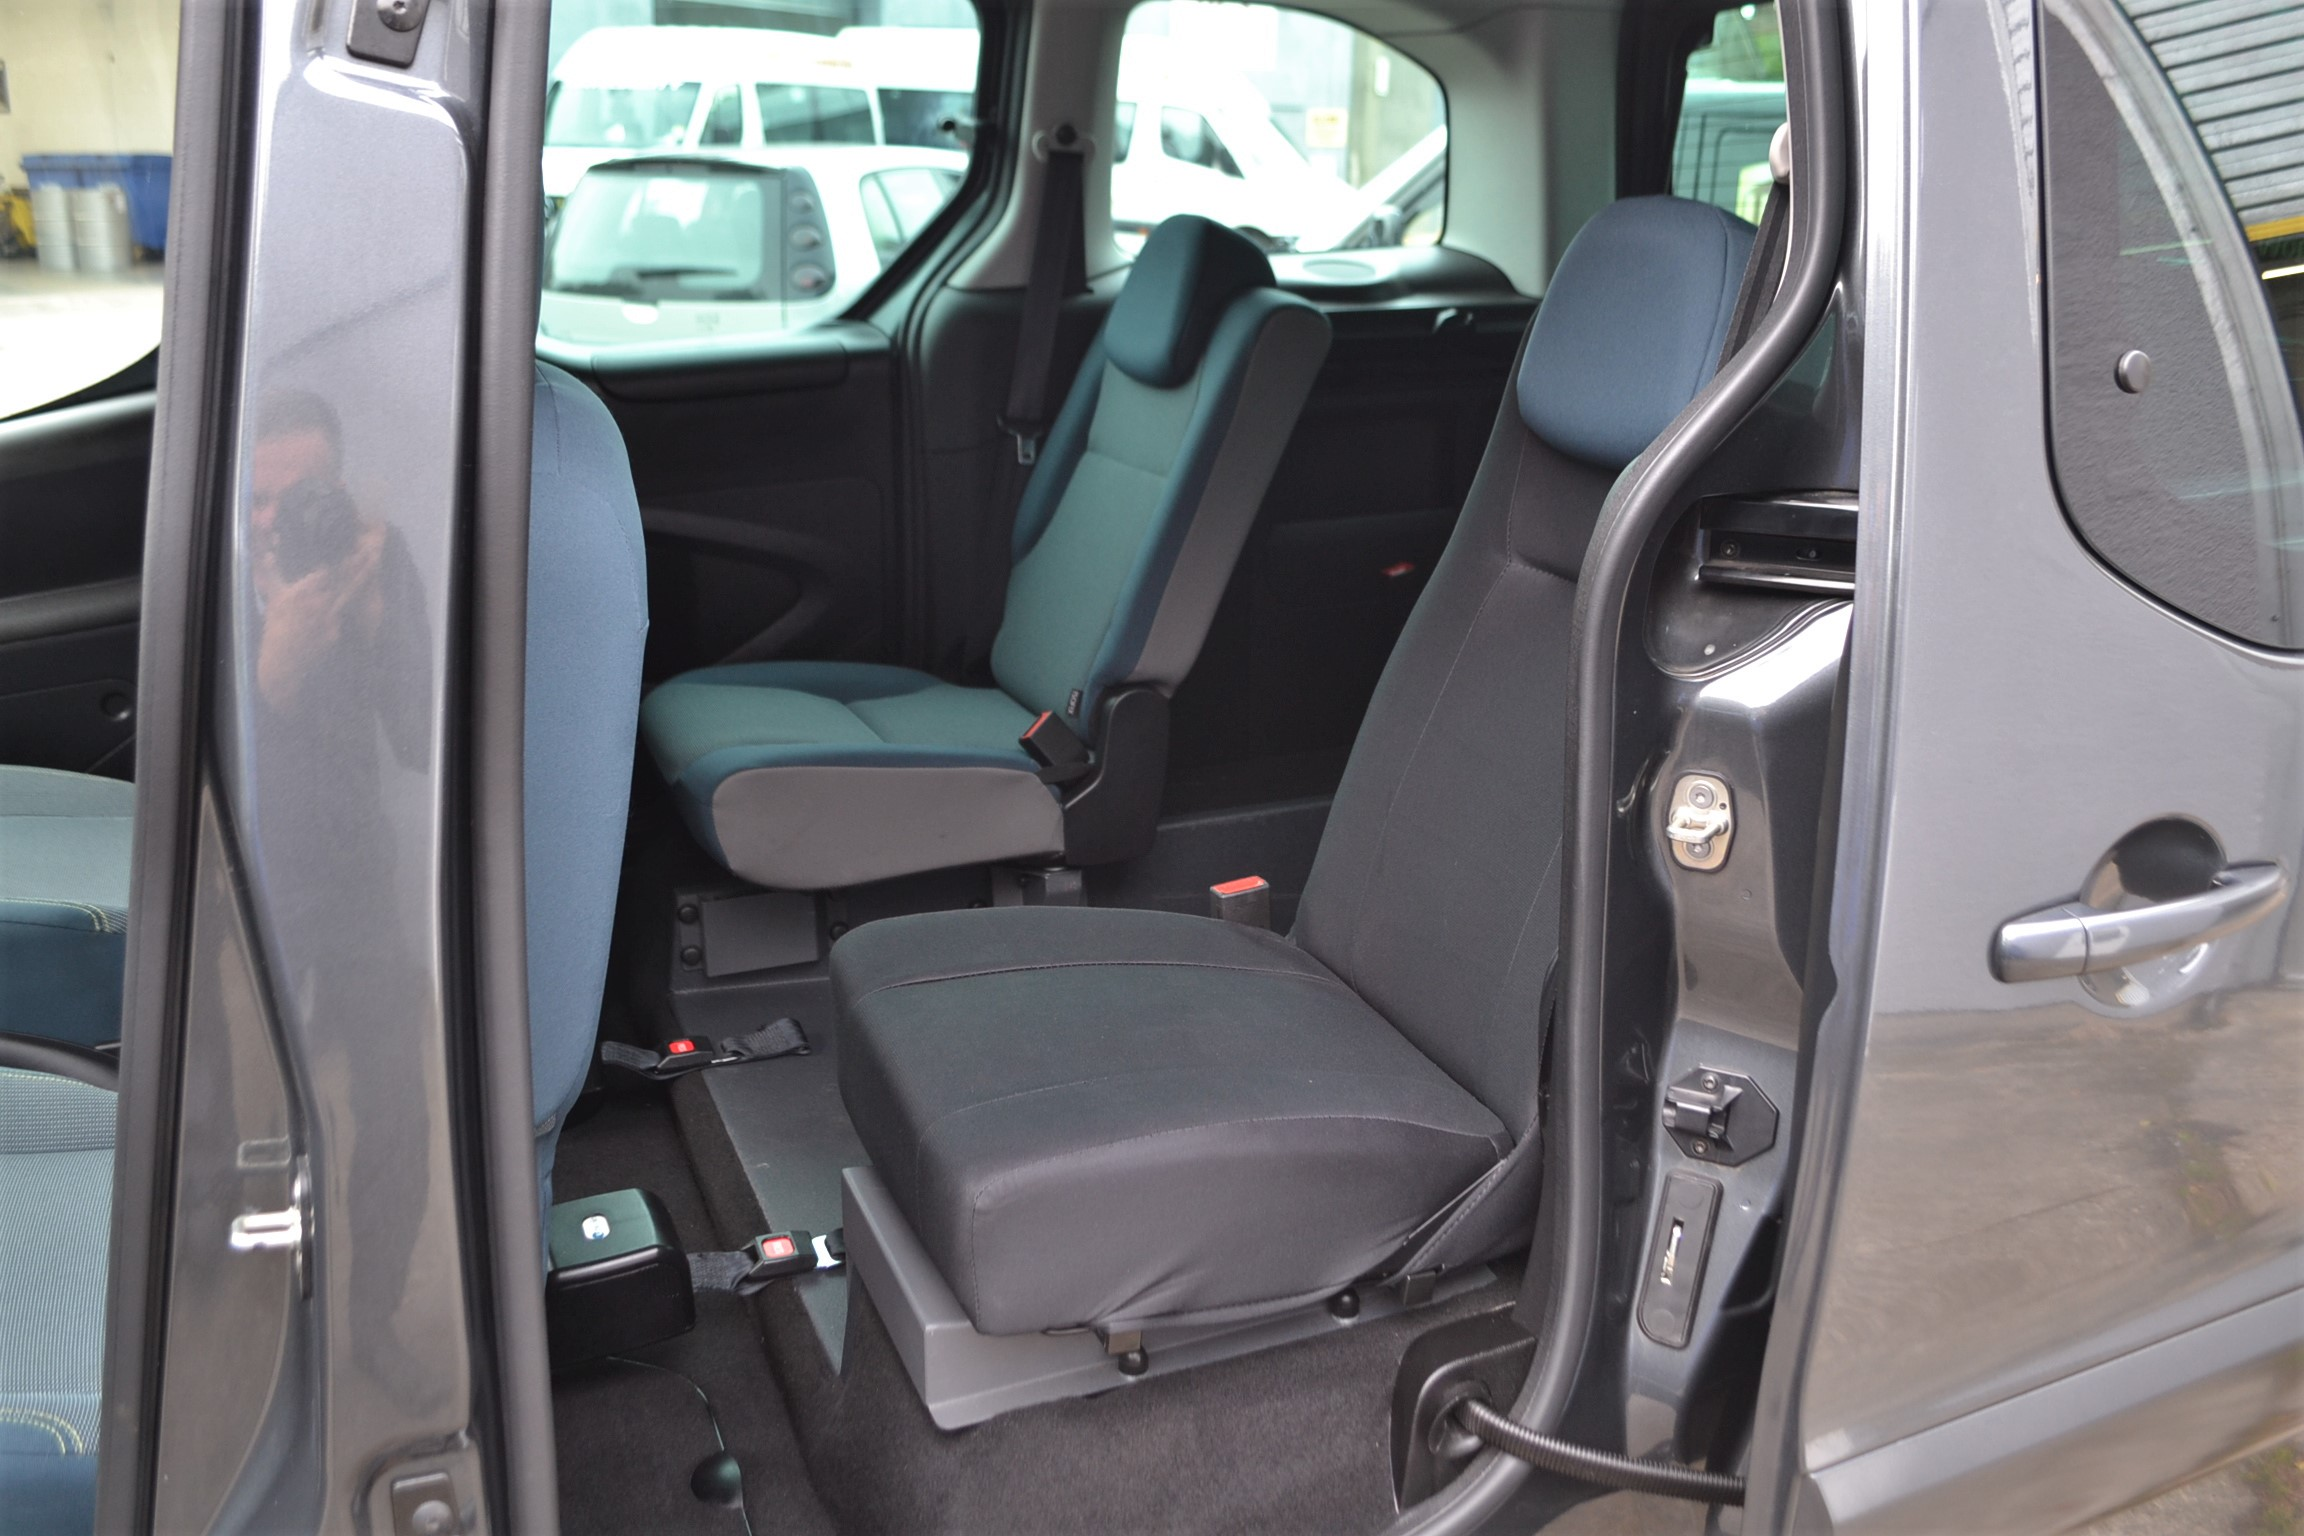 Disabled Cars For Sale Bristol Wheelchair Accessible Vehicles Used For Sale Somerset Devon Dorset Bath Peugeot Partner WA68 EVU 25